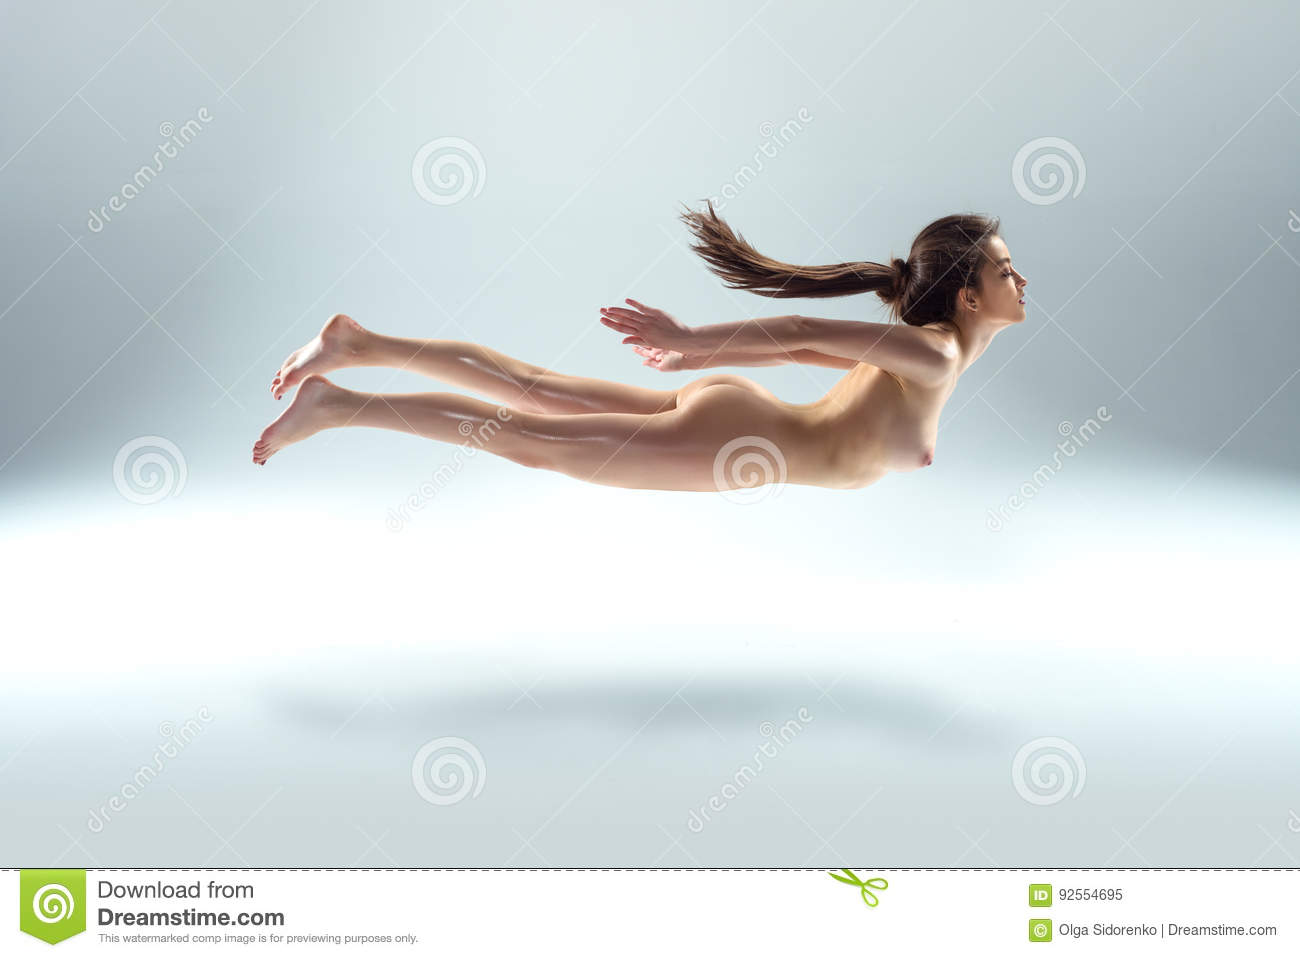 Bello levitare nudo della donna isolato su Gray Background